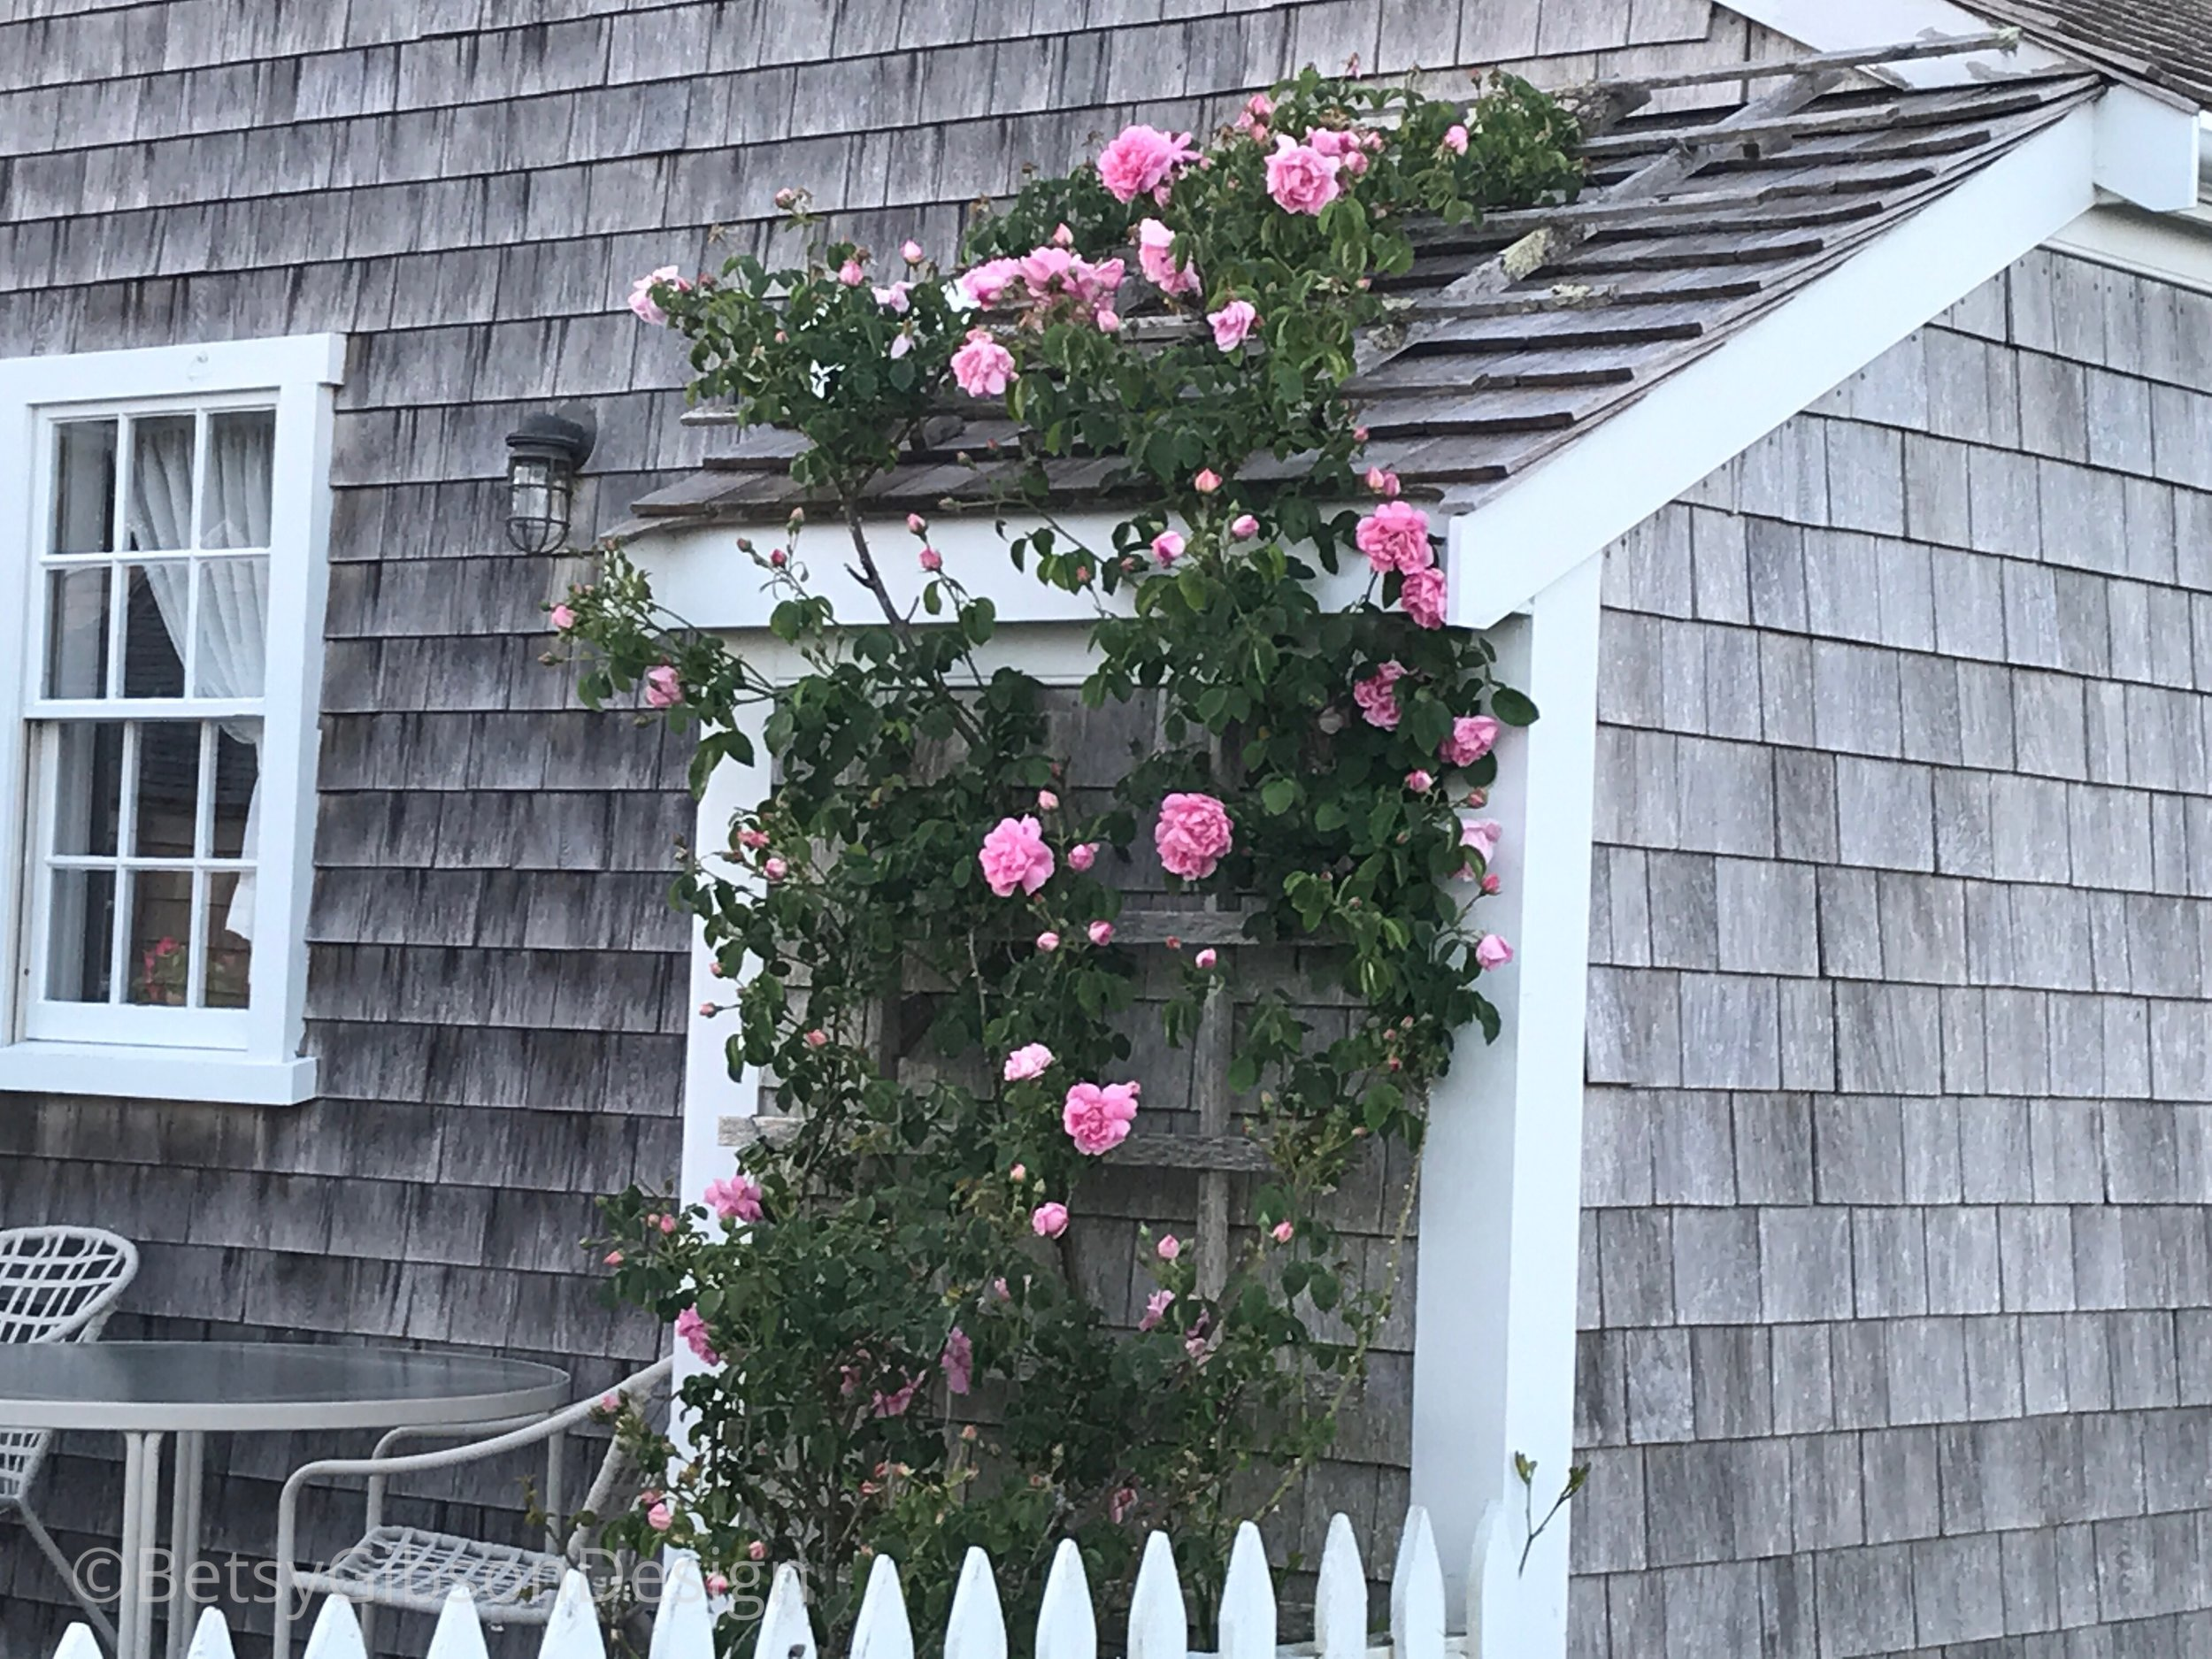 Roses are climbing all over Sconset! The Bluff Walk. July 2018. ©betsygibsondesign